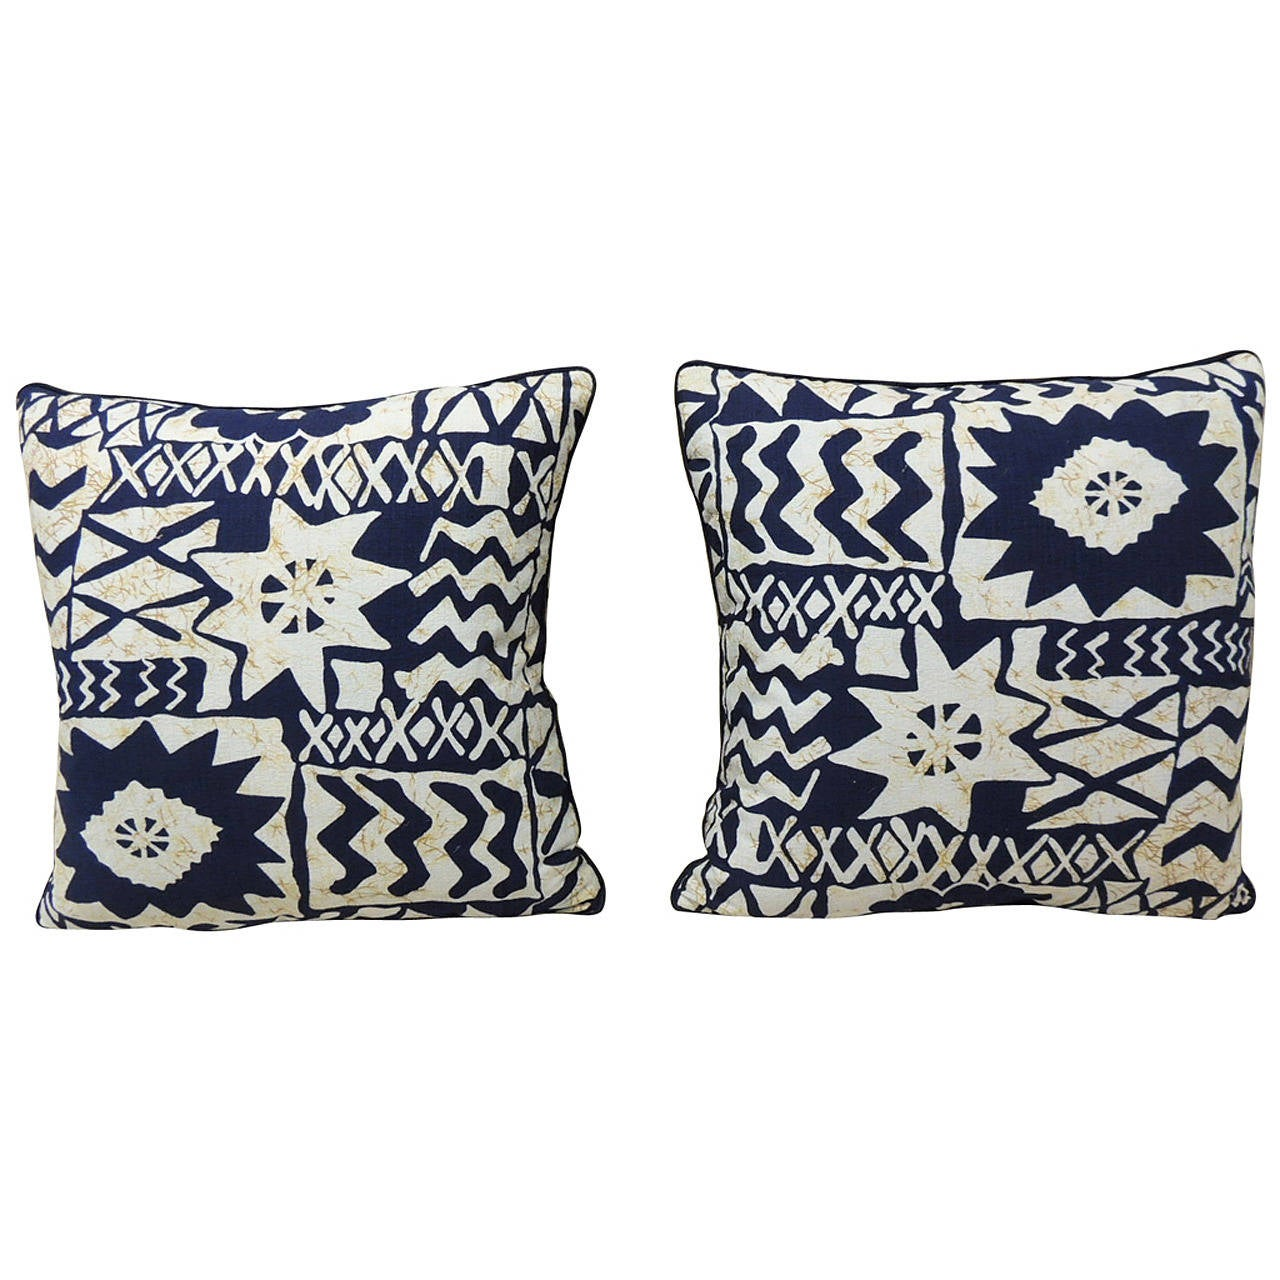 Decorative Pillows Vintage : Vintage Pair of Blue and White Graphic Barkcloth Decorative Pillows For Sale at 1stdibs